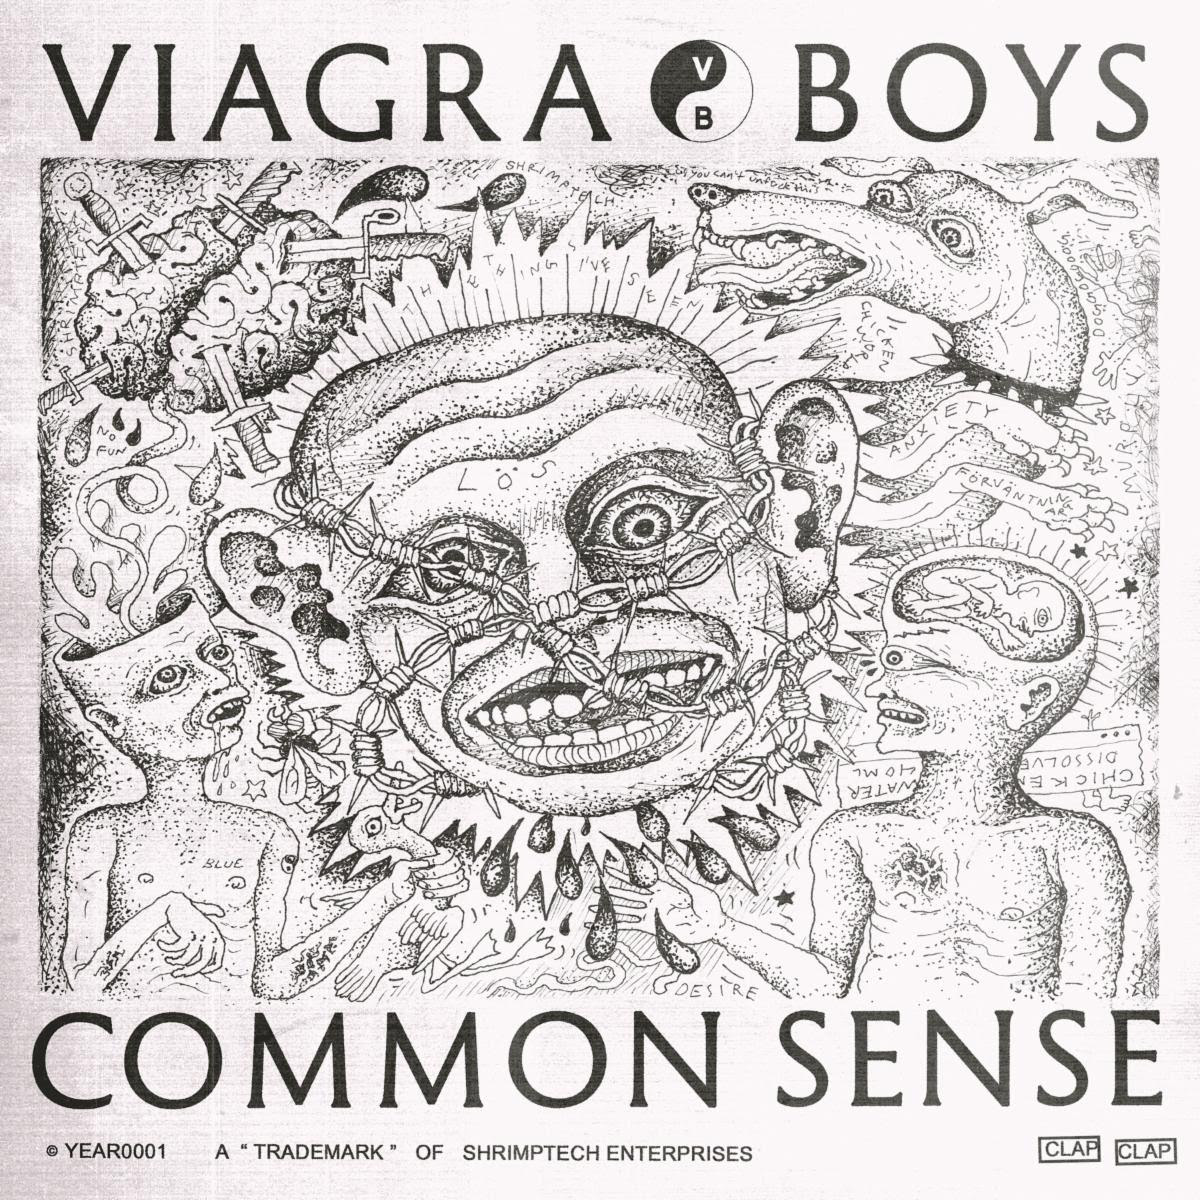 Common Sense by V**gra Boys album review by Leslie Chu for Northern Transmissions